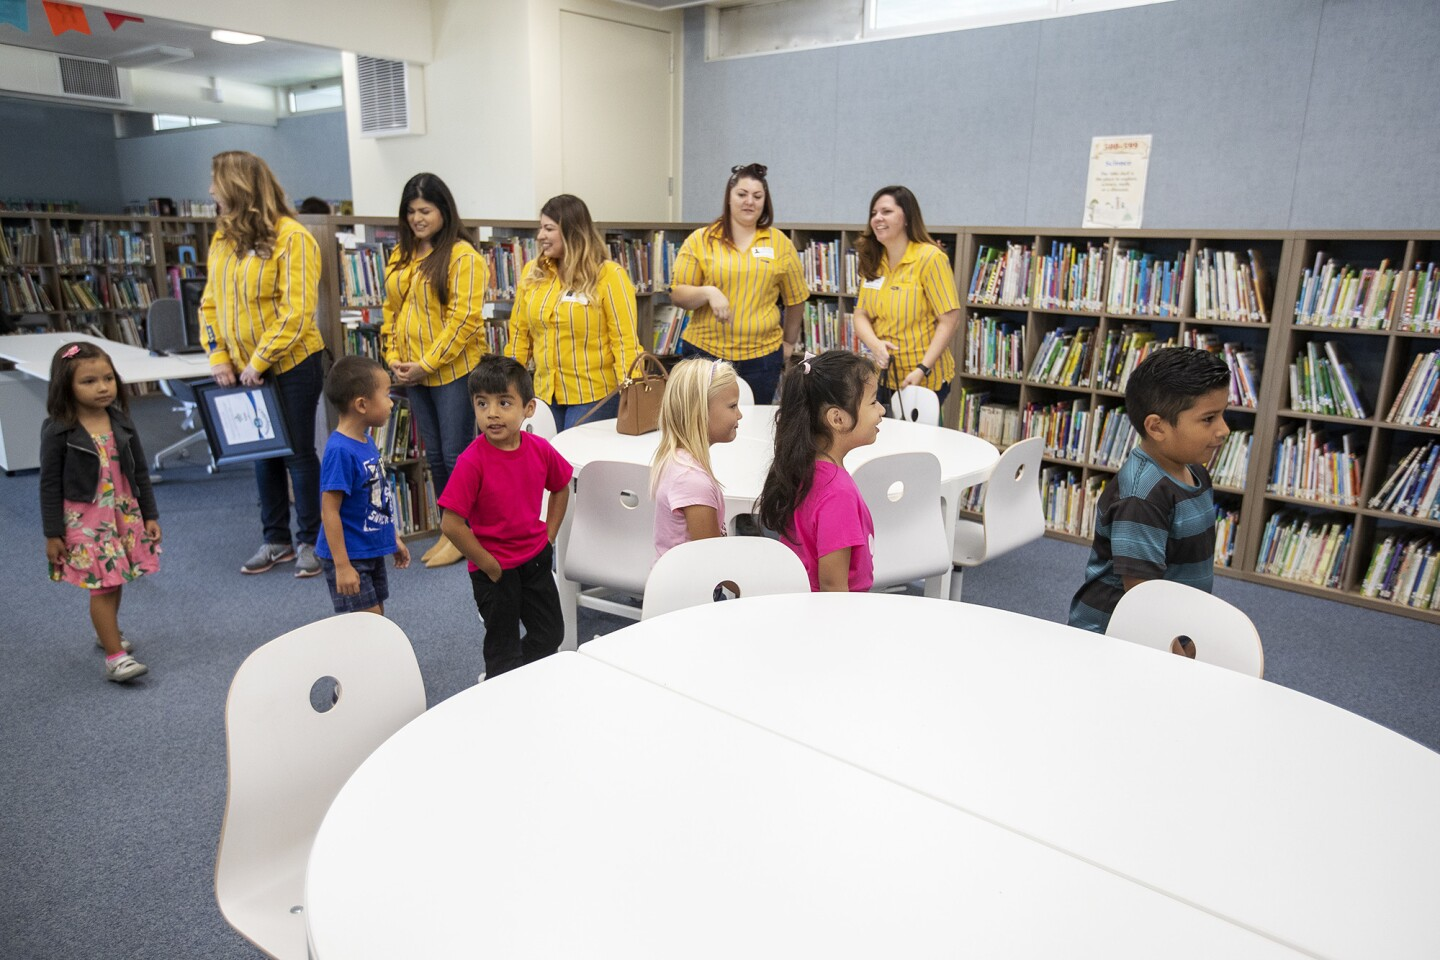 Representatives of IKEA watch as students check out the newly revamped library at Paularino Elementary School in Costa Mesa on Friday. IKEA donated furnishings for a complete remodel.